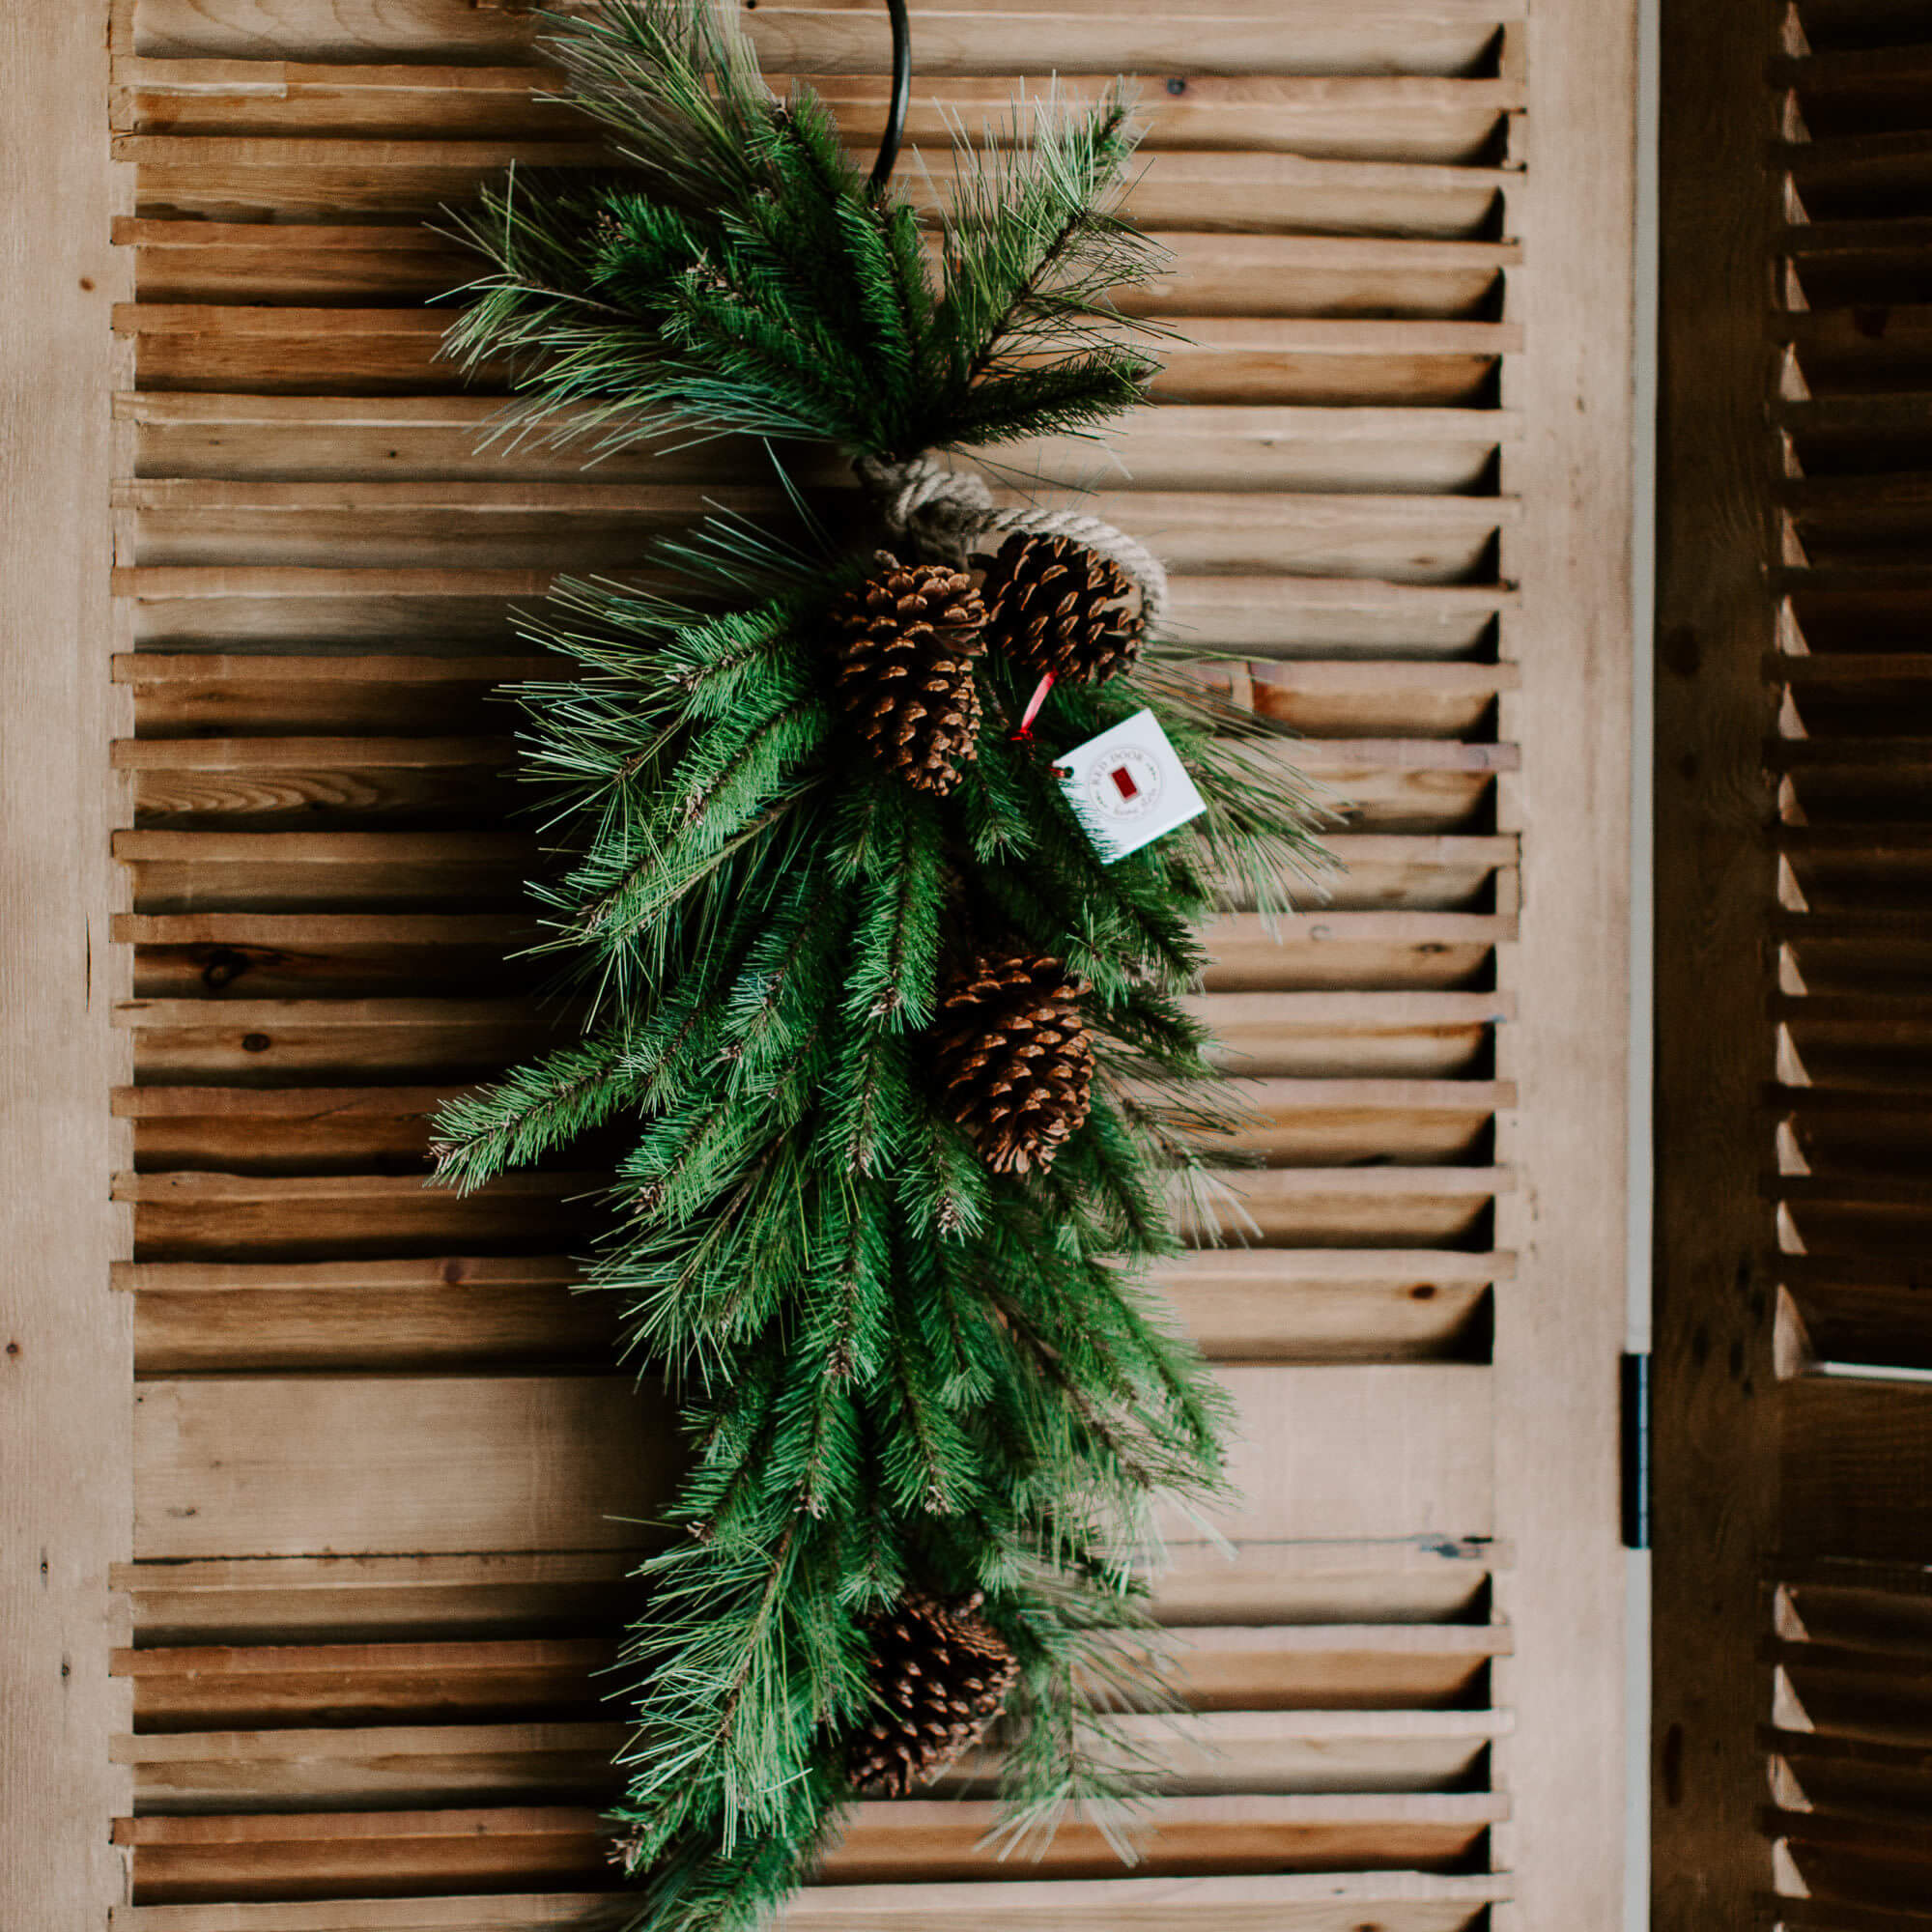 A grand 40 inch long faux pine drop or swag wrapped in a natural rope and adorned with pinecones for a winter front door decor